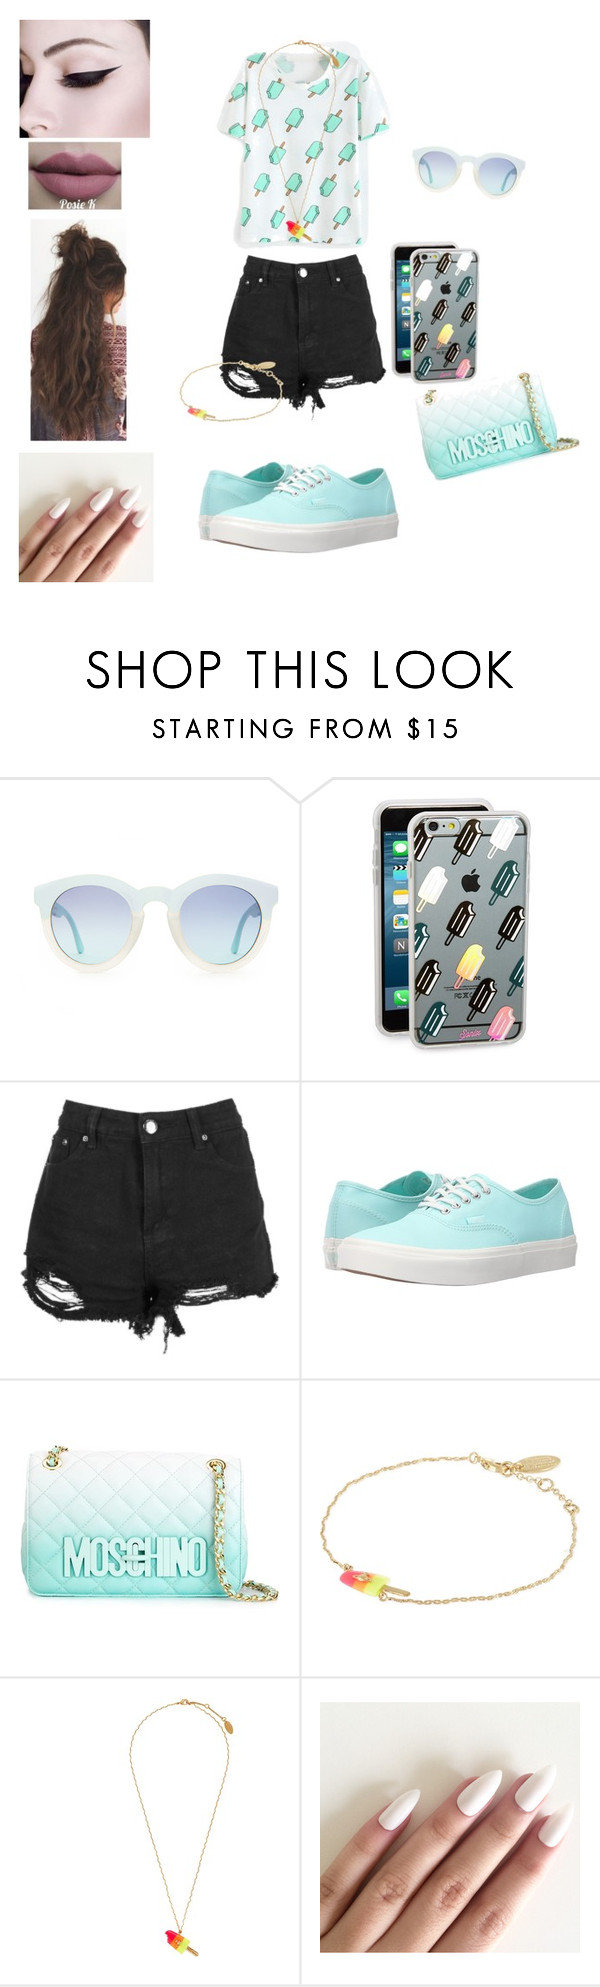 """""""Ice Cream Dream"""" by kissesari on Polyvore featuring Sonix, Vans, Moschino, Vivienne Westwood and Free People"""